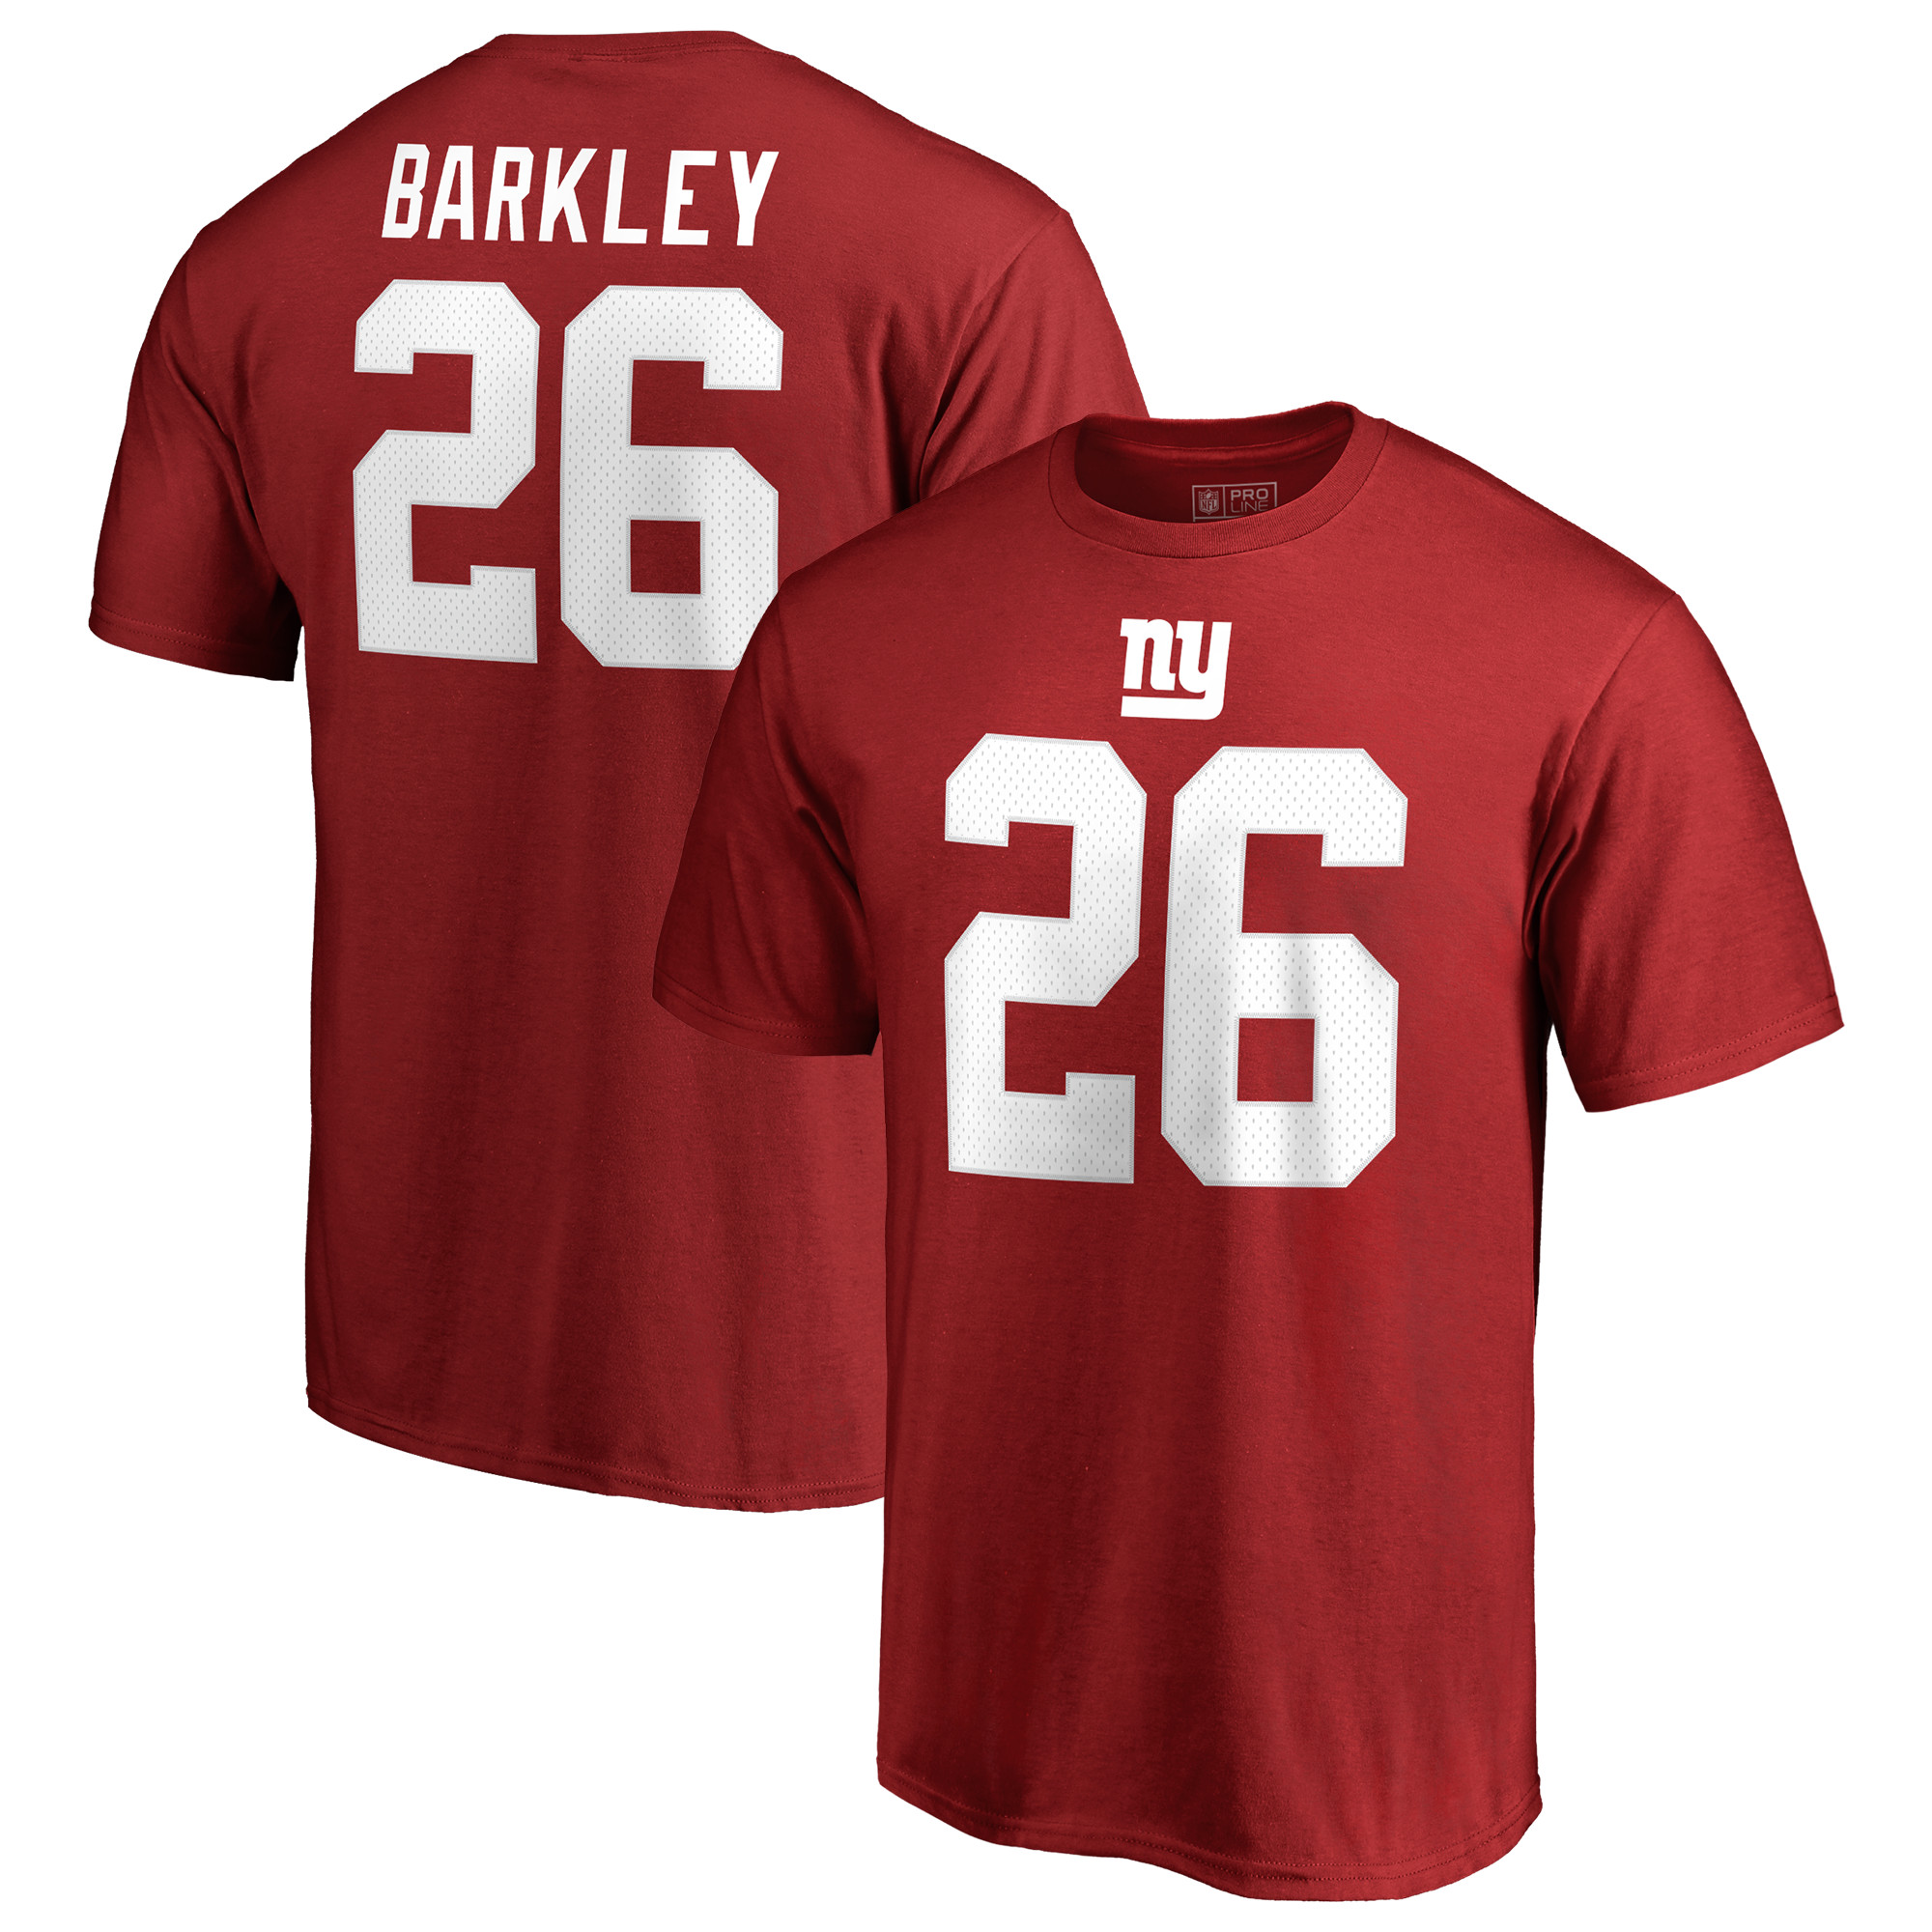 Saquon Barkley New York Giants NFL Pro Line by Fanatics Branded Player Authentic Stack Name & Number T-Shirt - Red